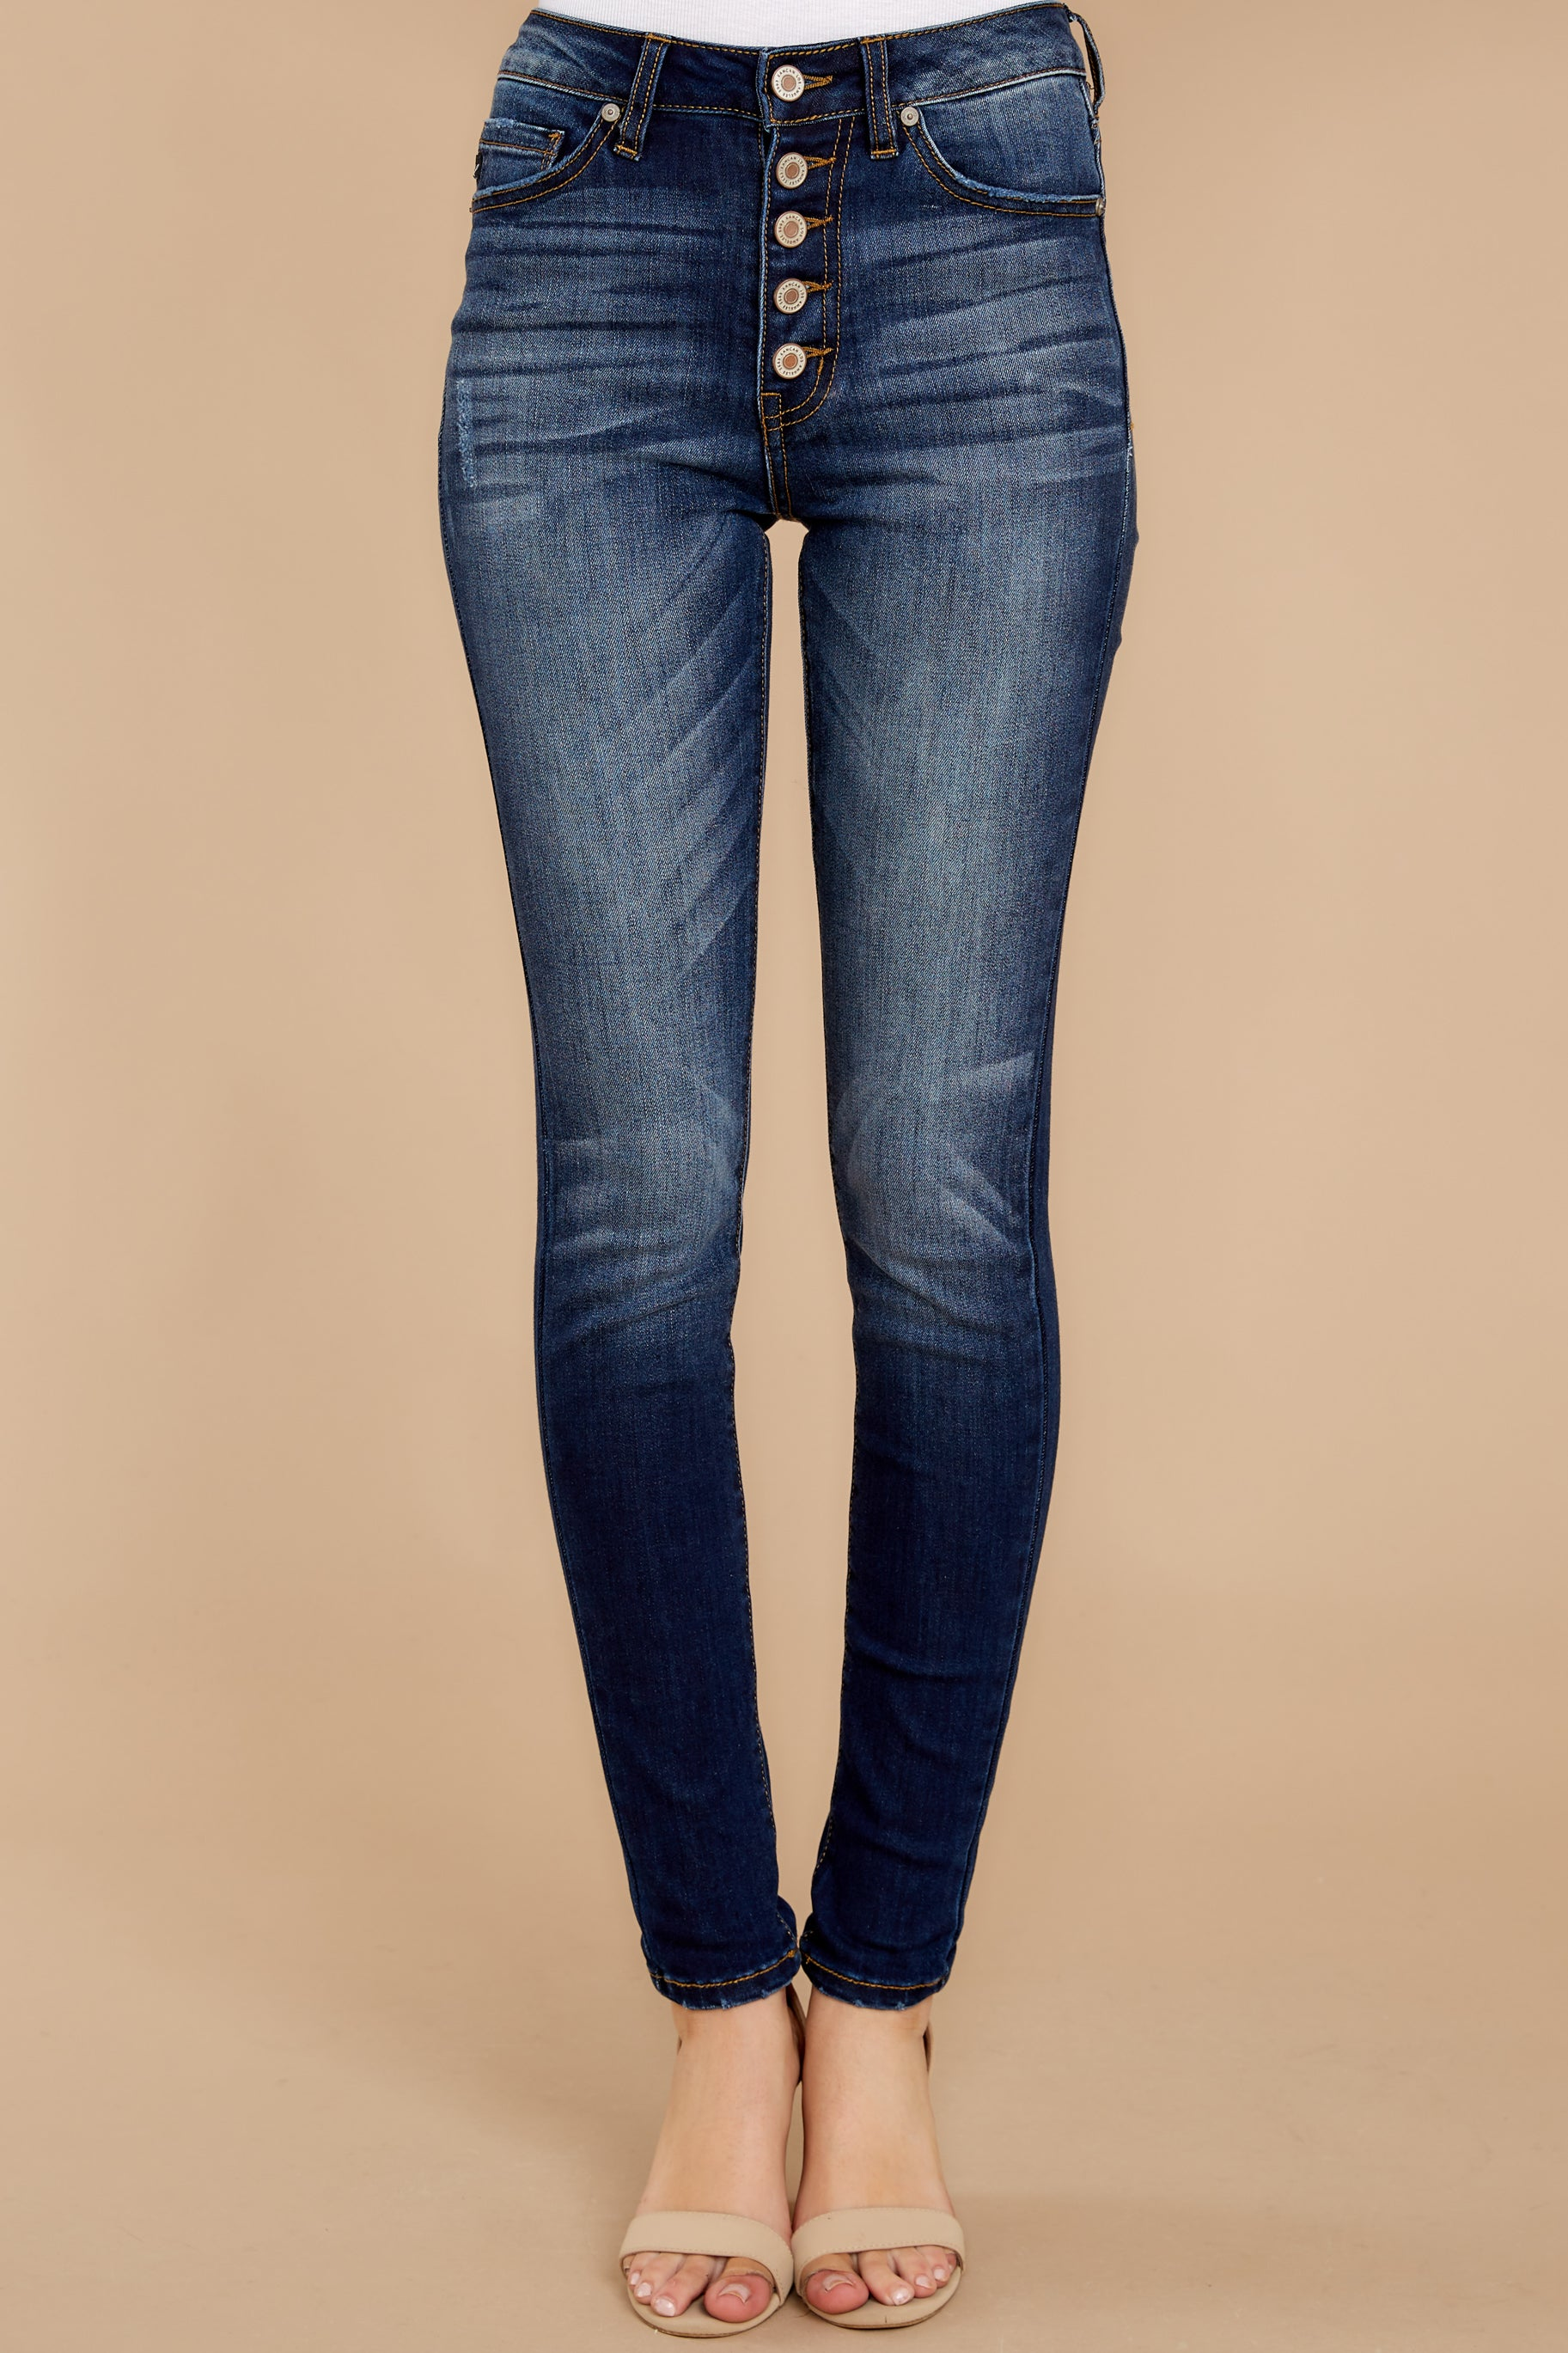 2 Rule The World Dark Wash Skinny Jeans at reddressboutique.com